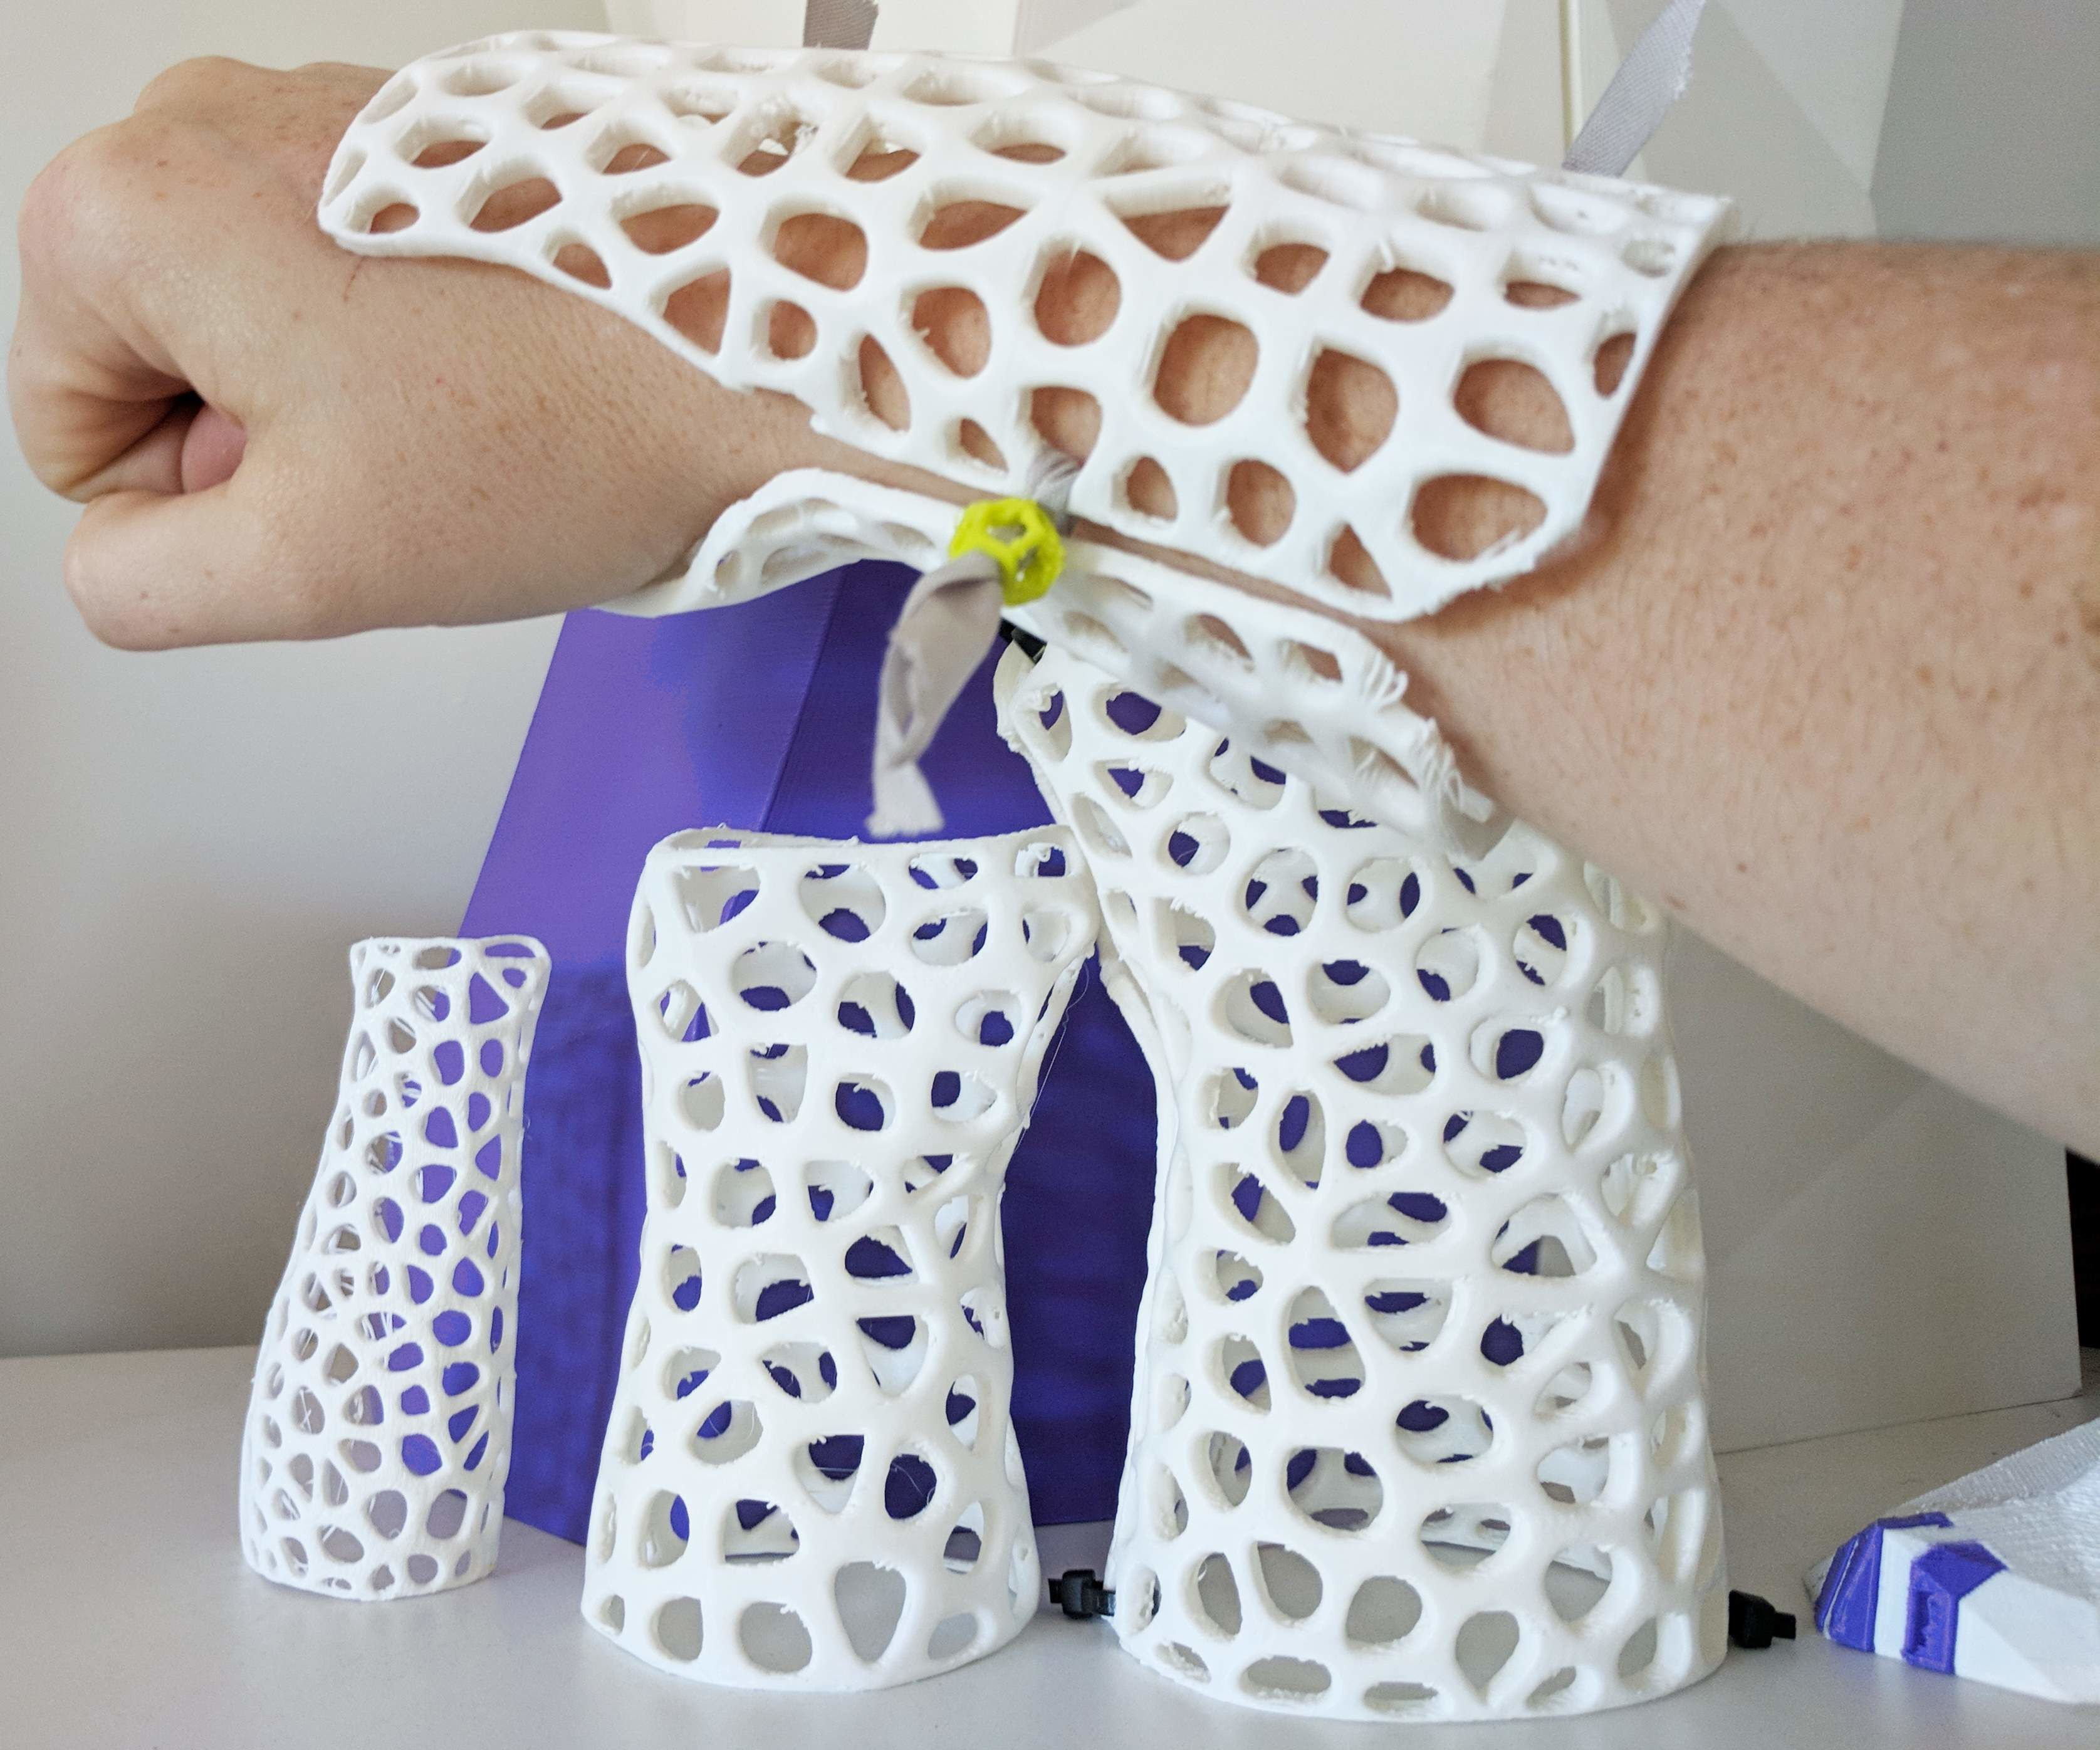 How to Design Custom, 3D Printable Braces for Arm Injury